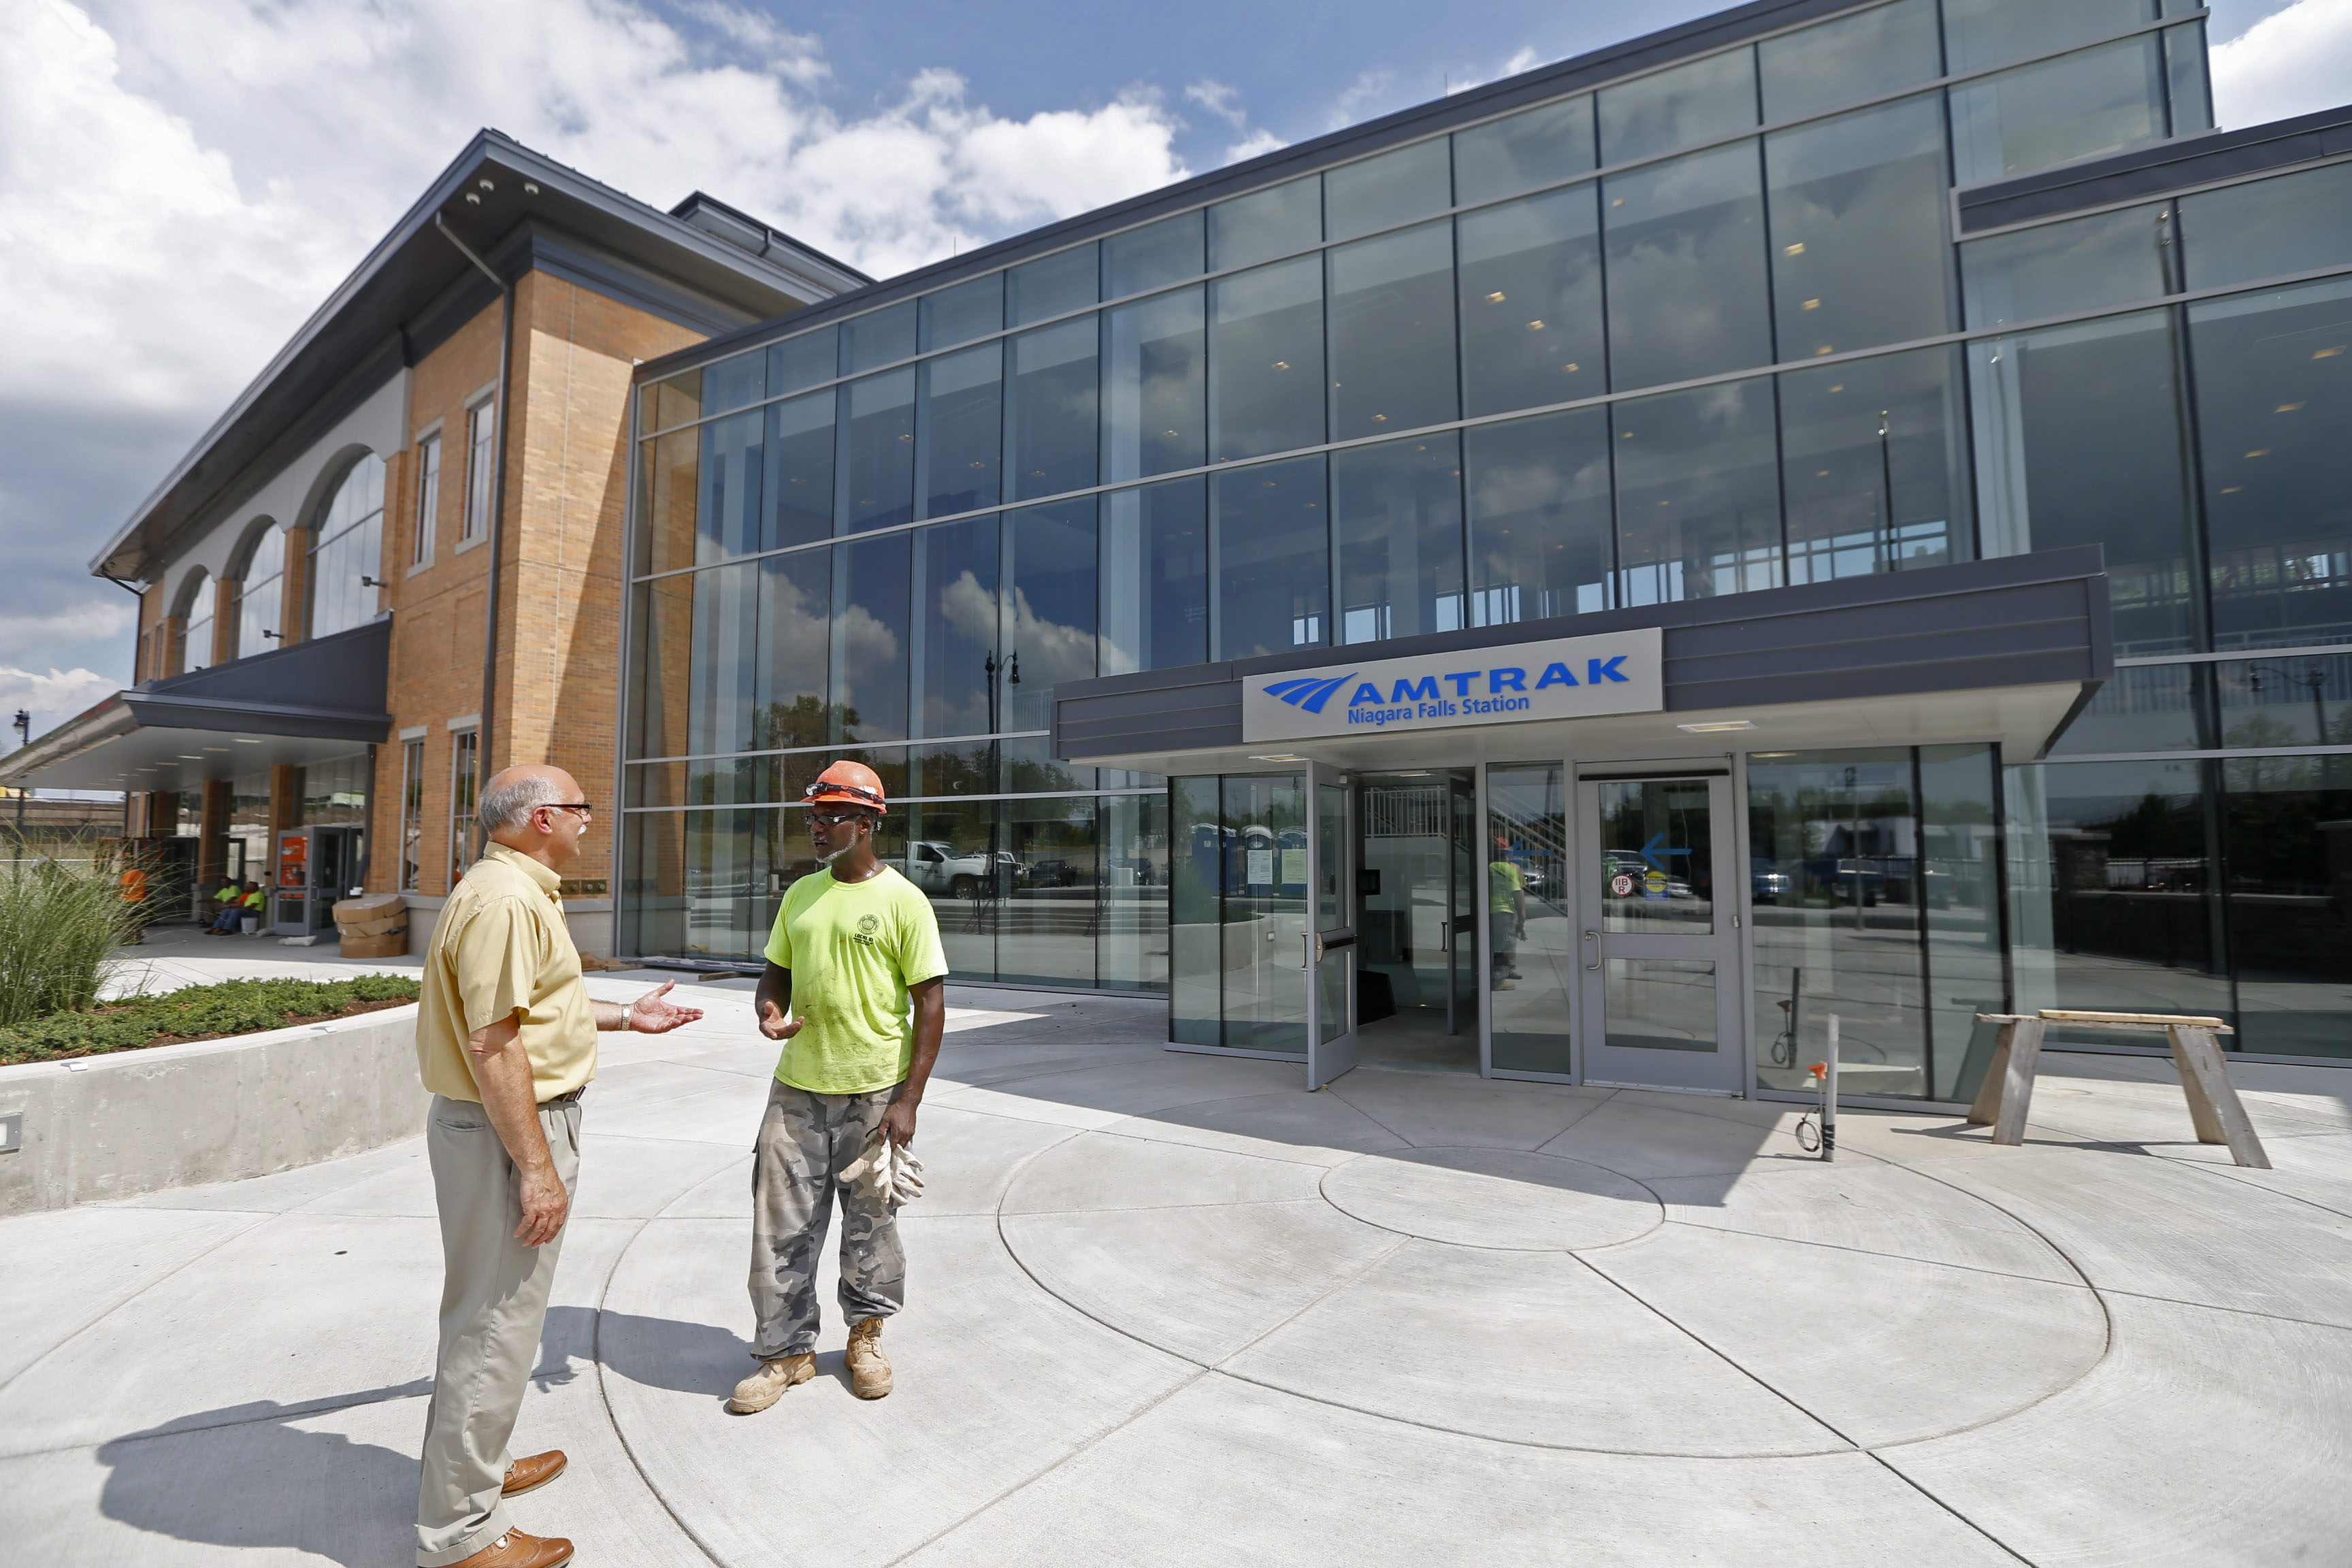 Clyde Coleman, a union laborer with Scrufari Construction, right, visits with Thomas DeSantis, acting director of planning and economics for the City of Niagara Falls, near the main entrance of the new $43 million Amtrak train station in Niagara Falls. (Robert Kirkham/Buffalo News)